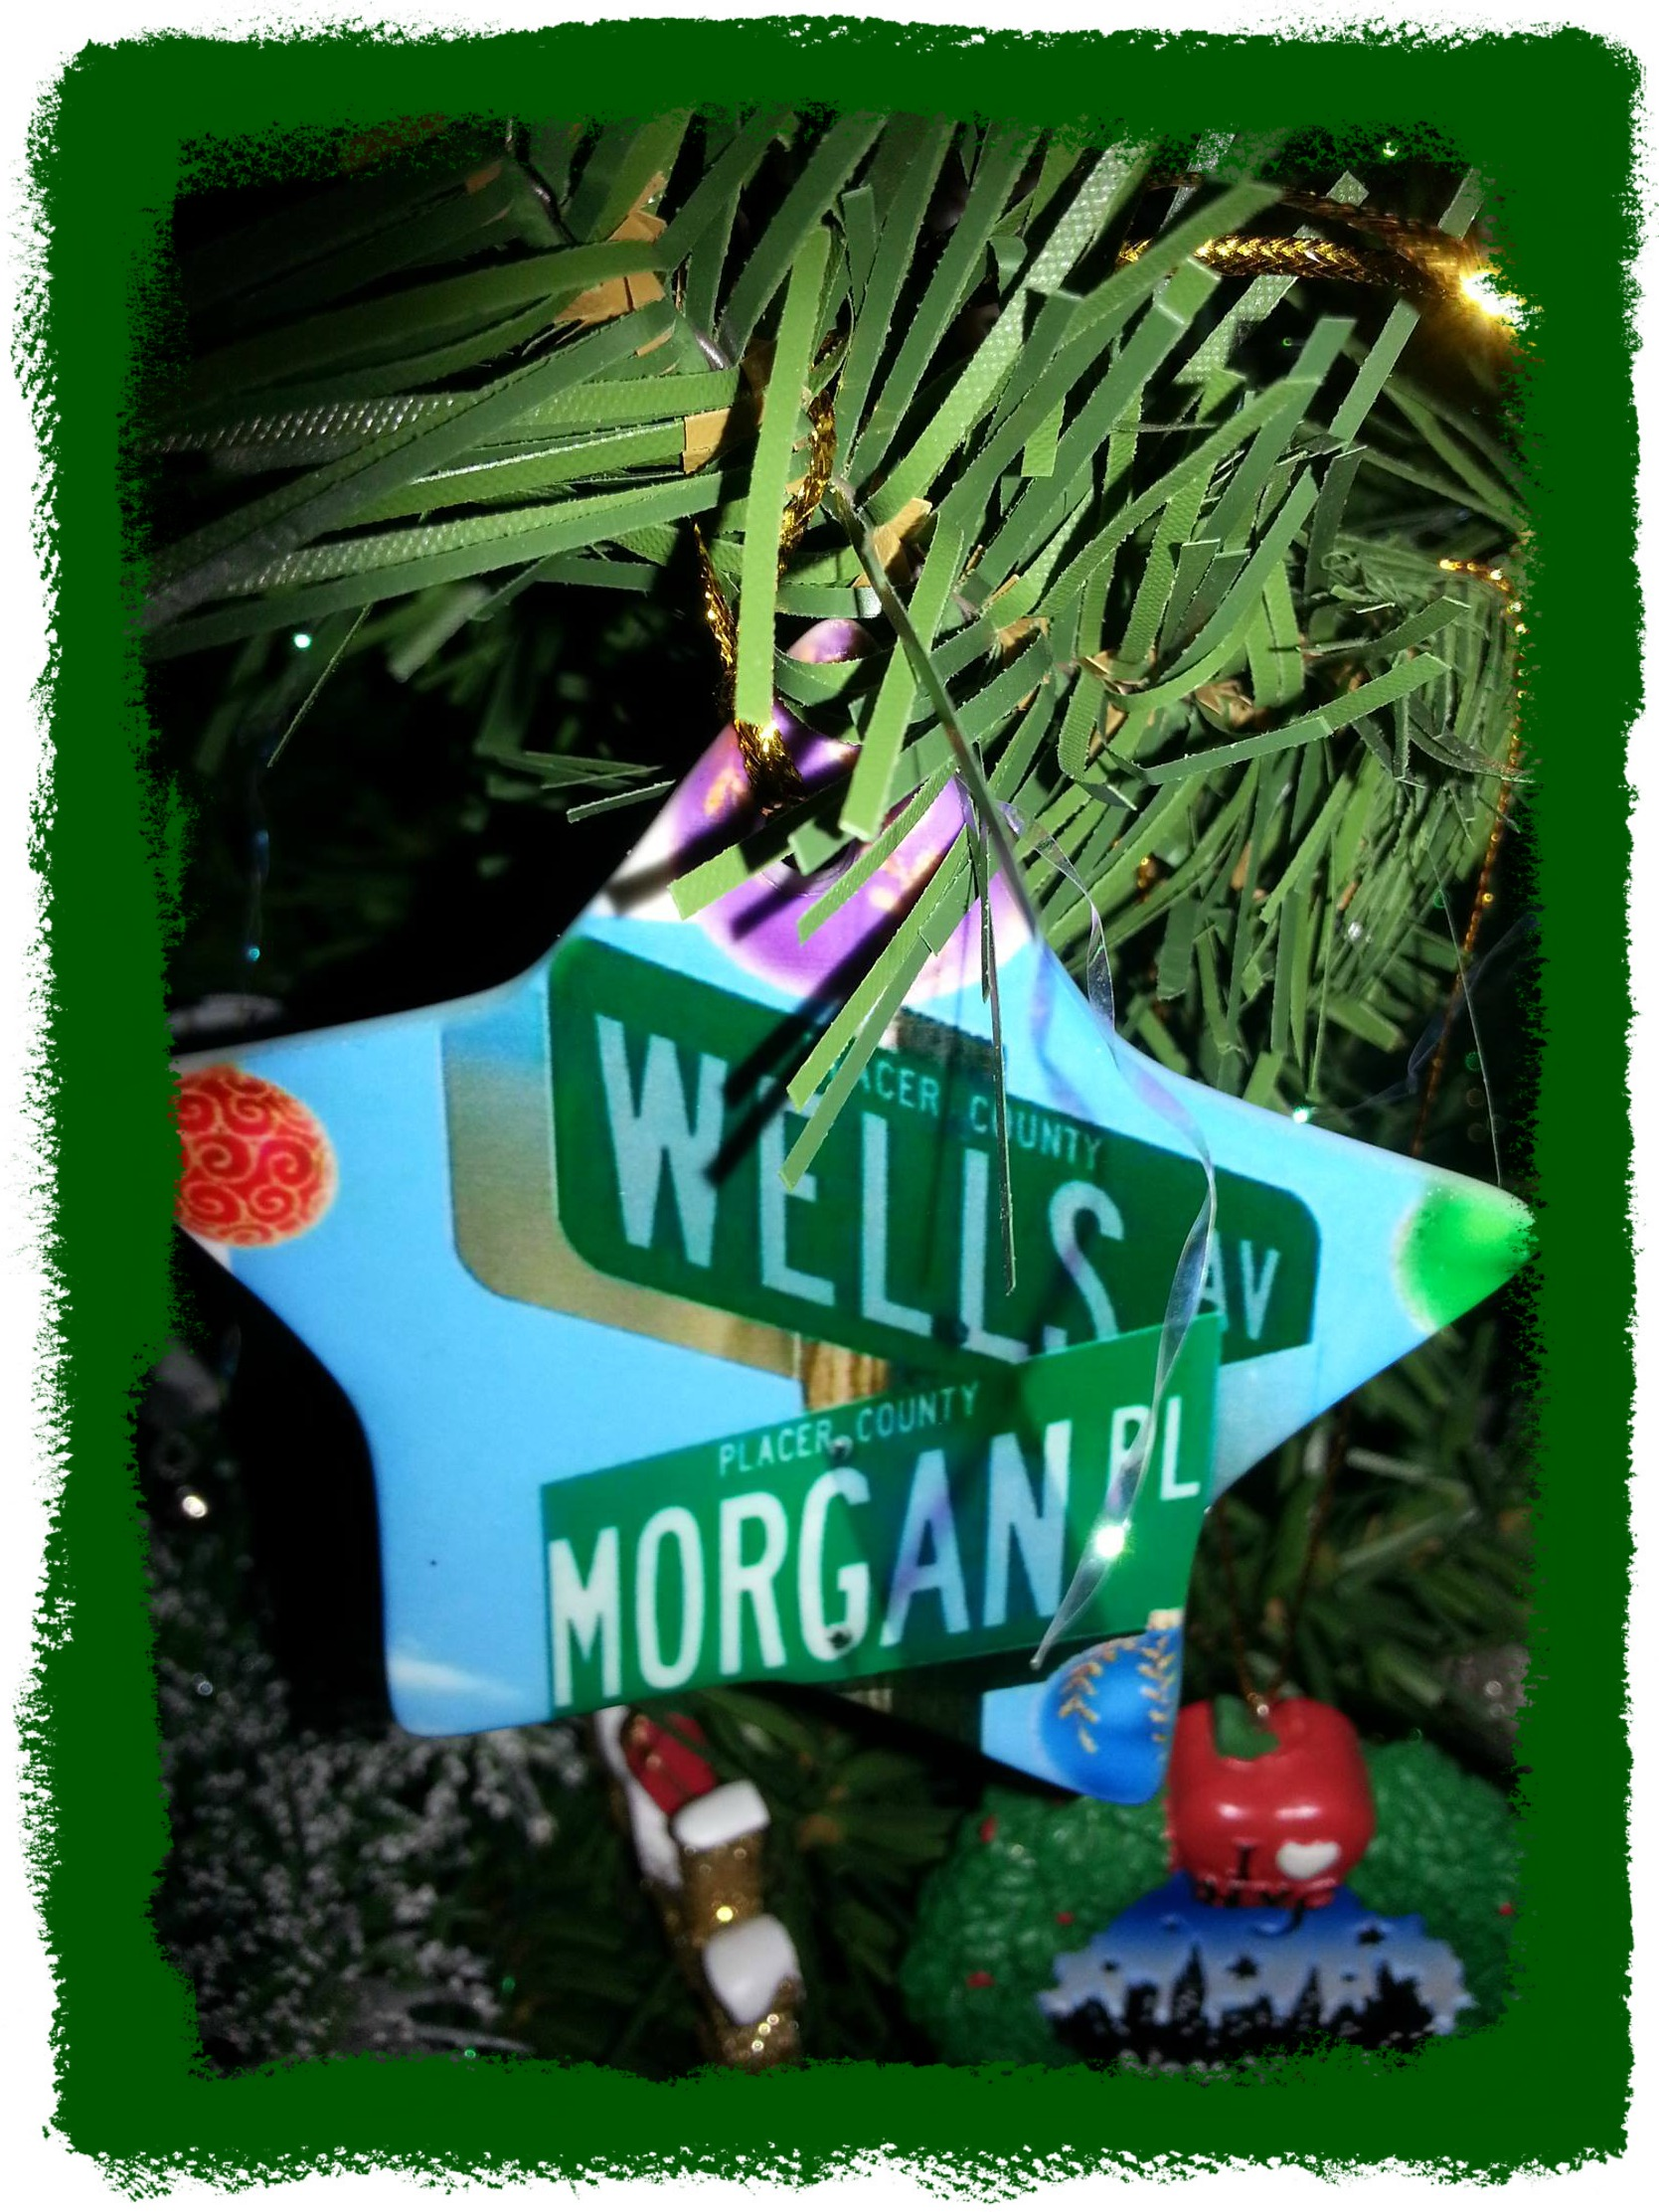 Street signs at crossroads, one sign Morgan & the other Wells